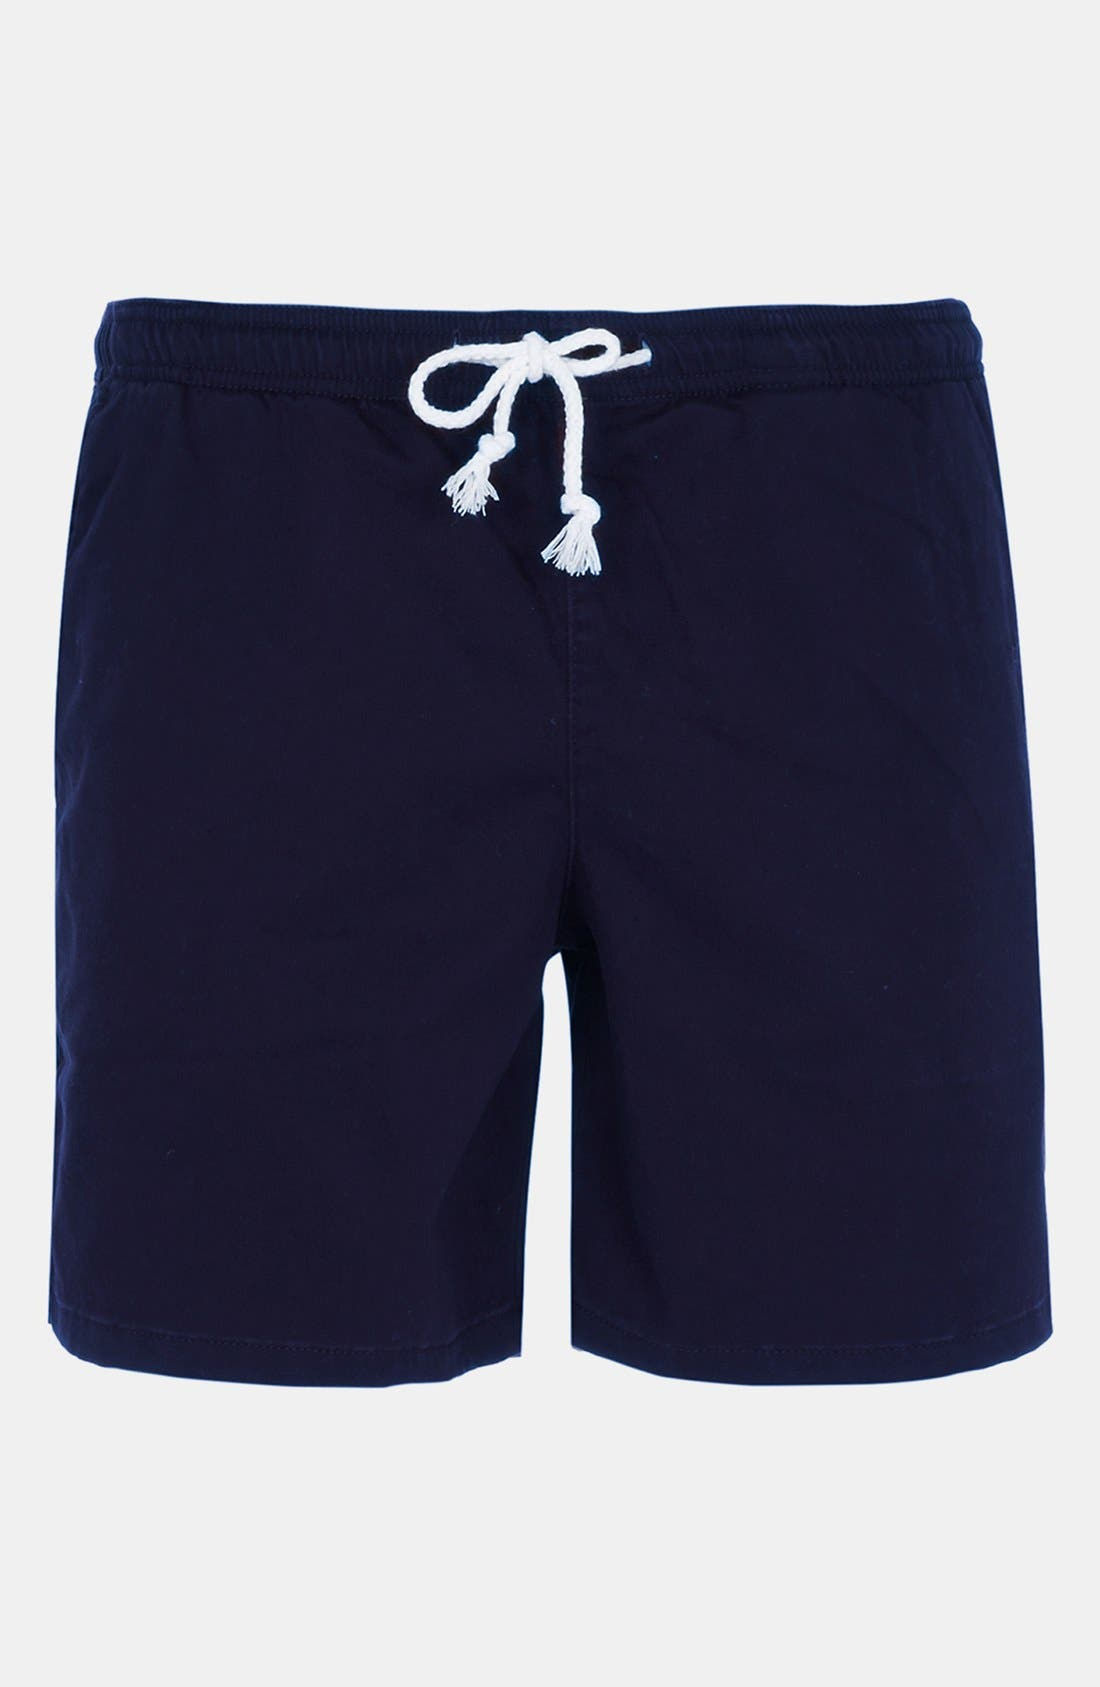 Alternate Image 1 Selected - Topman Sophomore Rugby Shorts